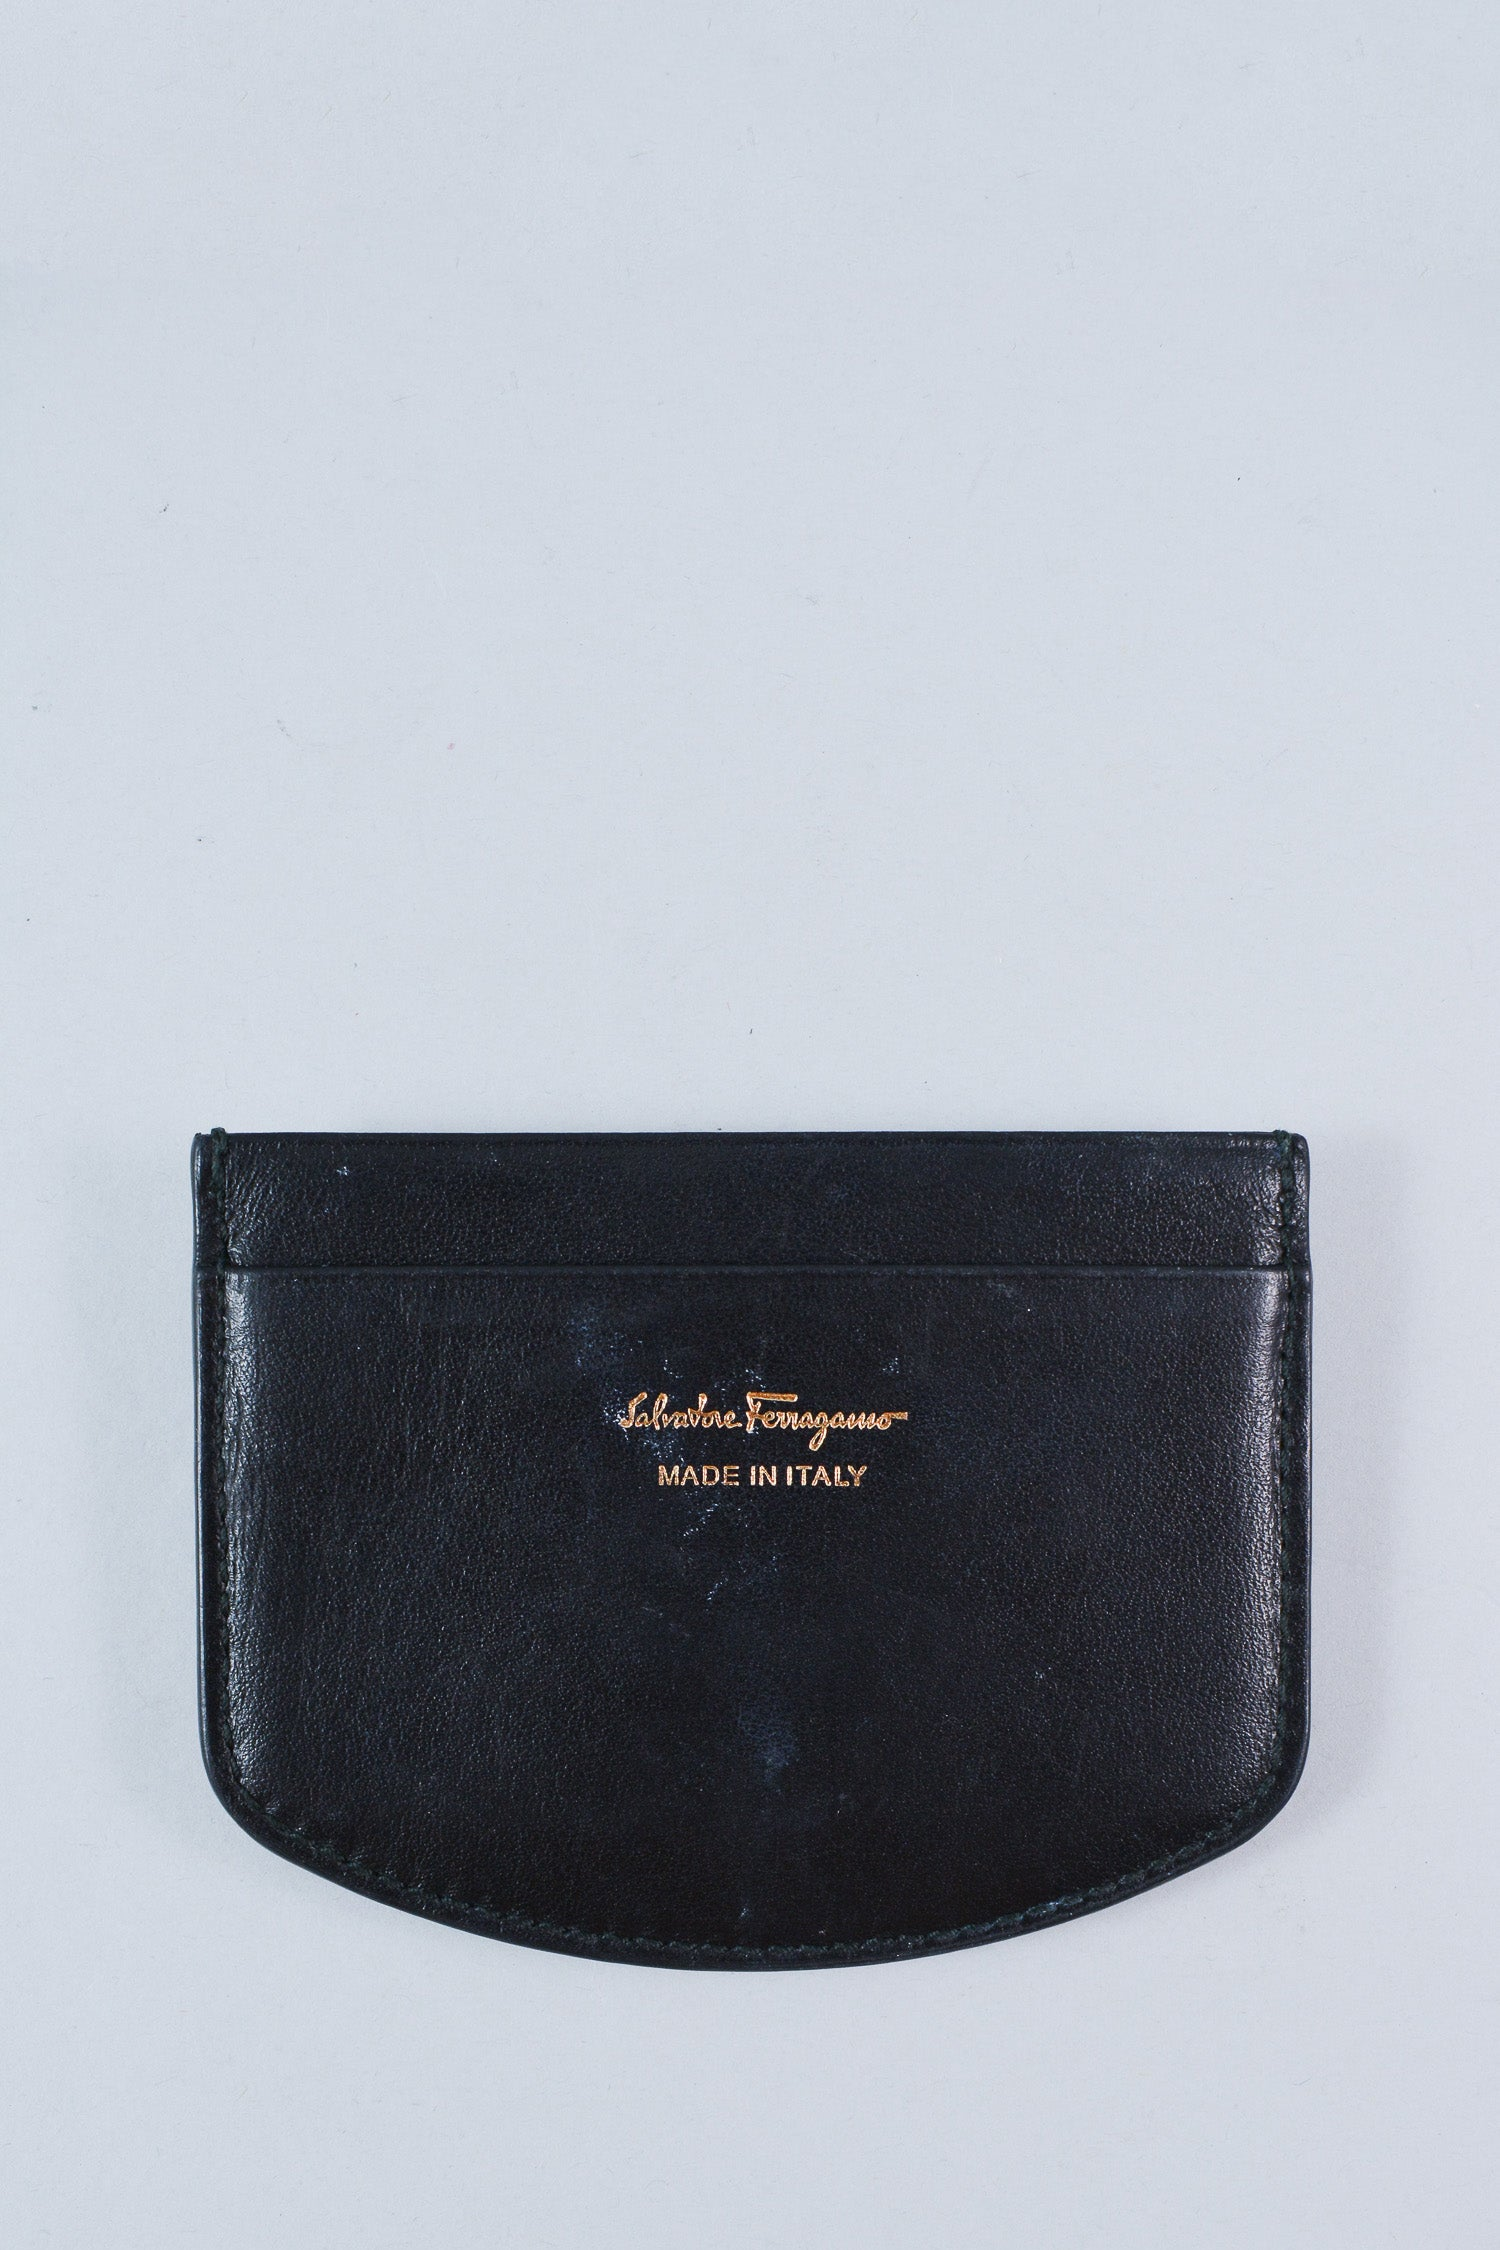 Salvatore Ferragamo Black and Horsebit Cardholder